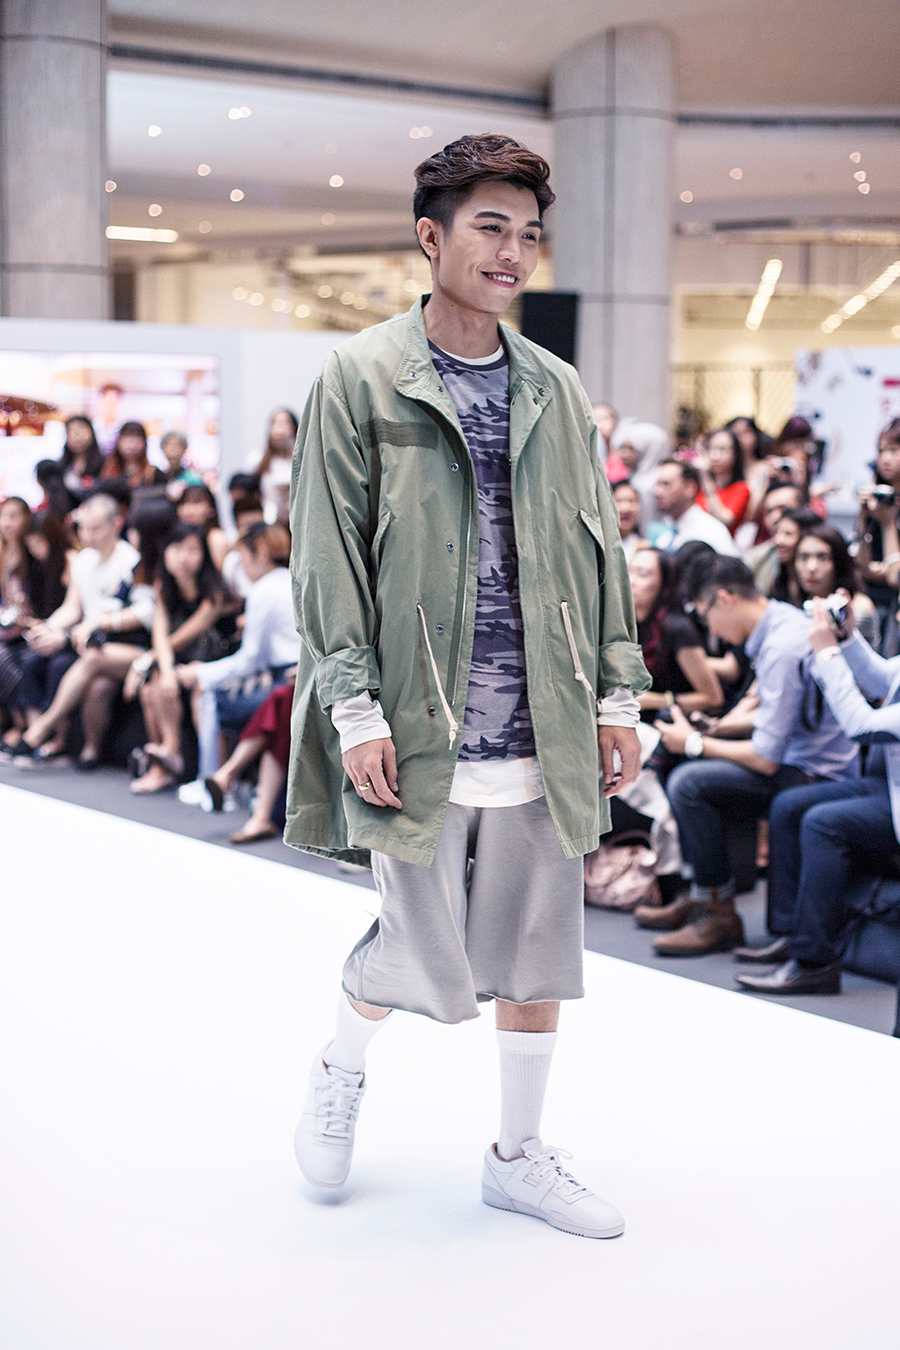 Catwalk at Clozette Style Party 2016 in Suntec City. #ClozetteStyleParty